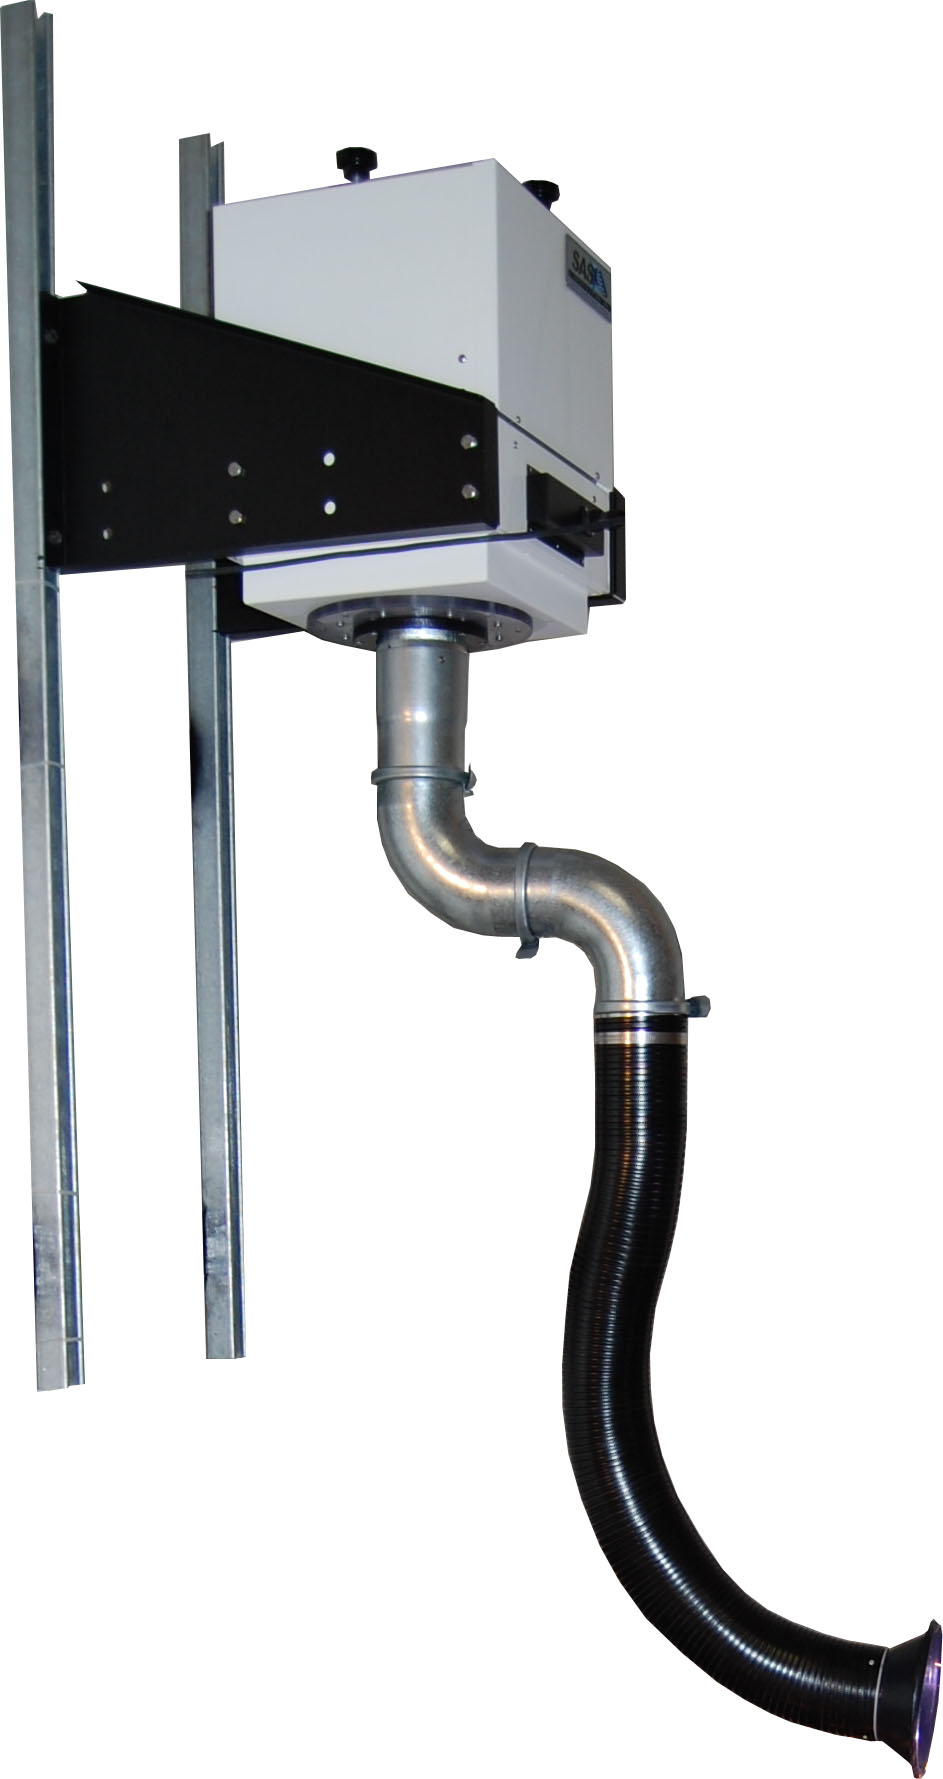 Model 300 Wall Mounted Fume Extractor for Manufacturing Cosmetics